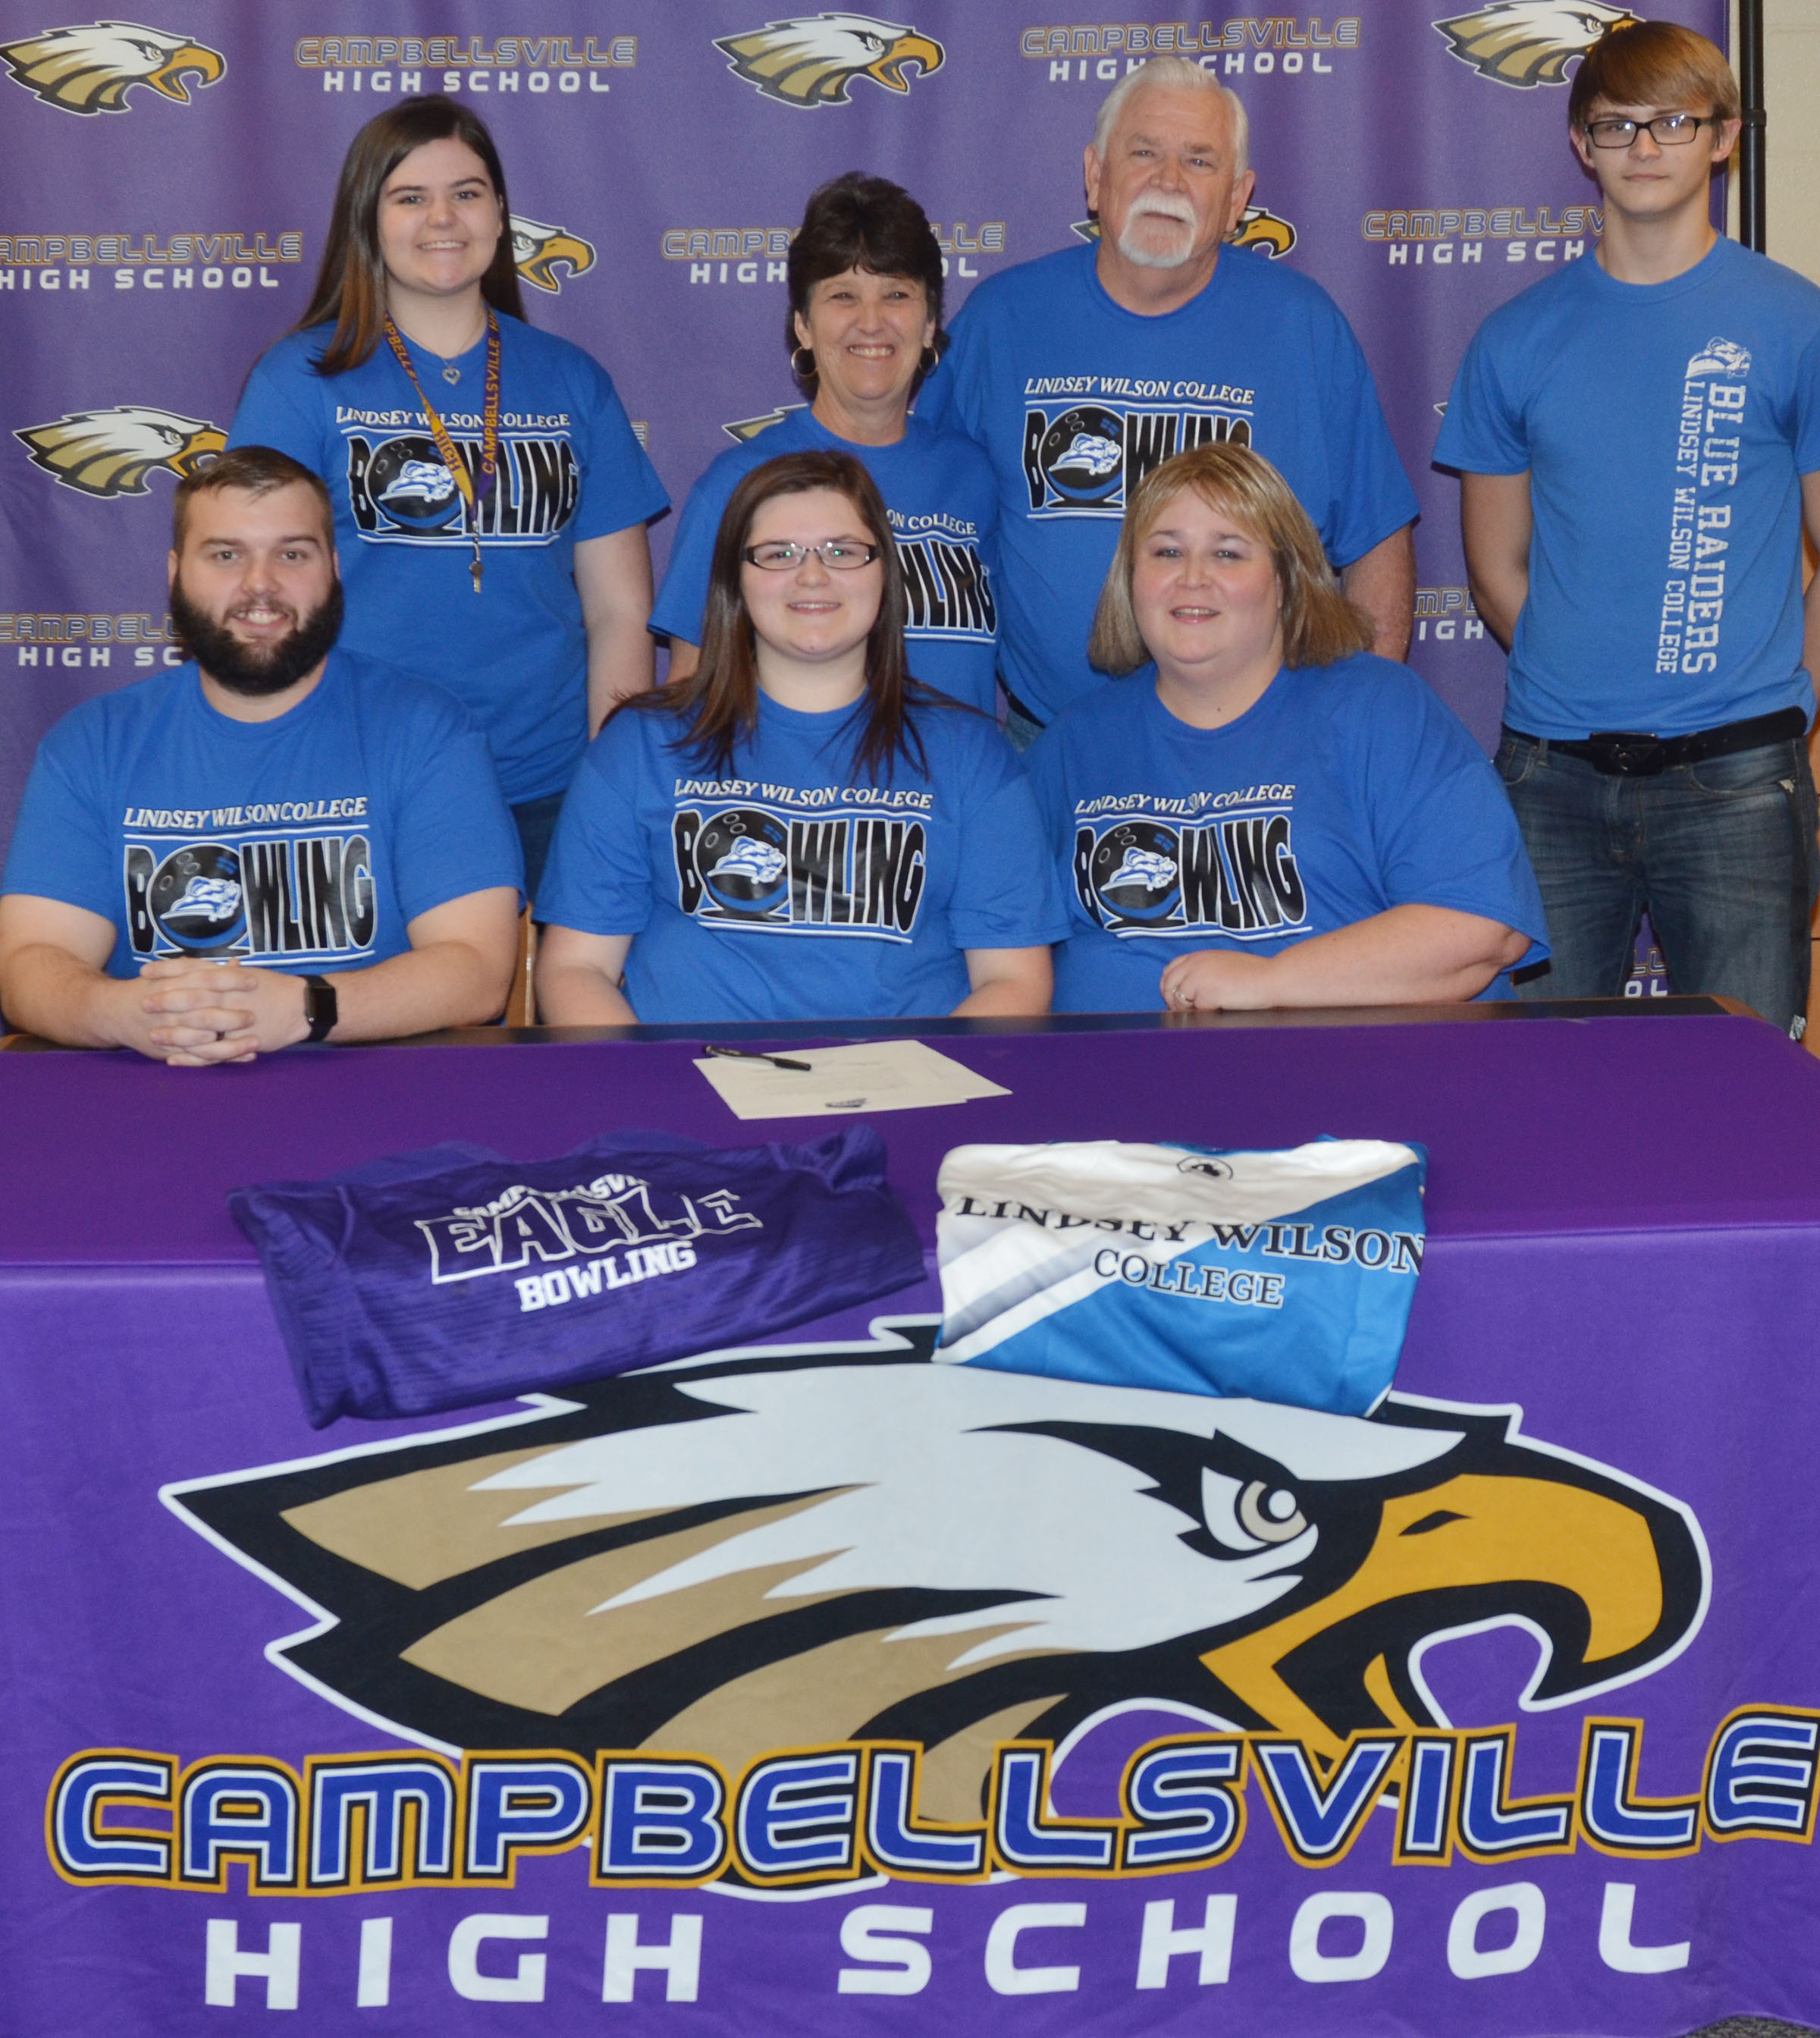 Campbellsville High School senior Vera Brown will continue her academic and bowling career at Lindsey Wilson College in the fall. She officially signed her letter of intent in a special ceremony on Wednesday, Feb. 1. From left, front, are stepfather Andrew Tate, Vera, and mother Tonya Tate. Back, sister and CHS junior Vivian Brown, grandmother Sandy Holmes, grandfather Allen Holmes and brother and CHS freshman Dalton Brown.